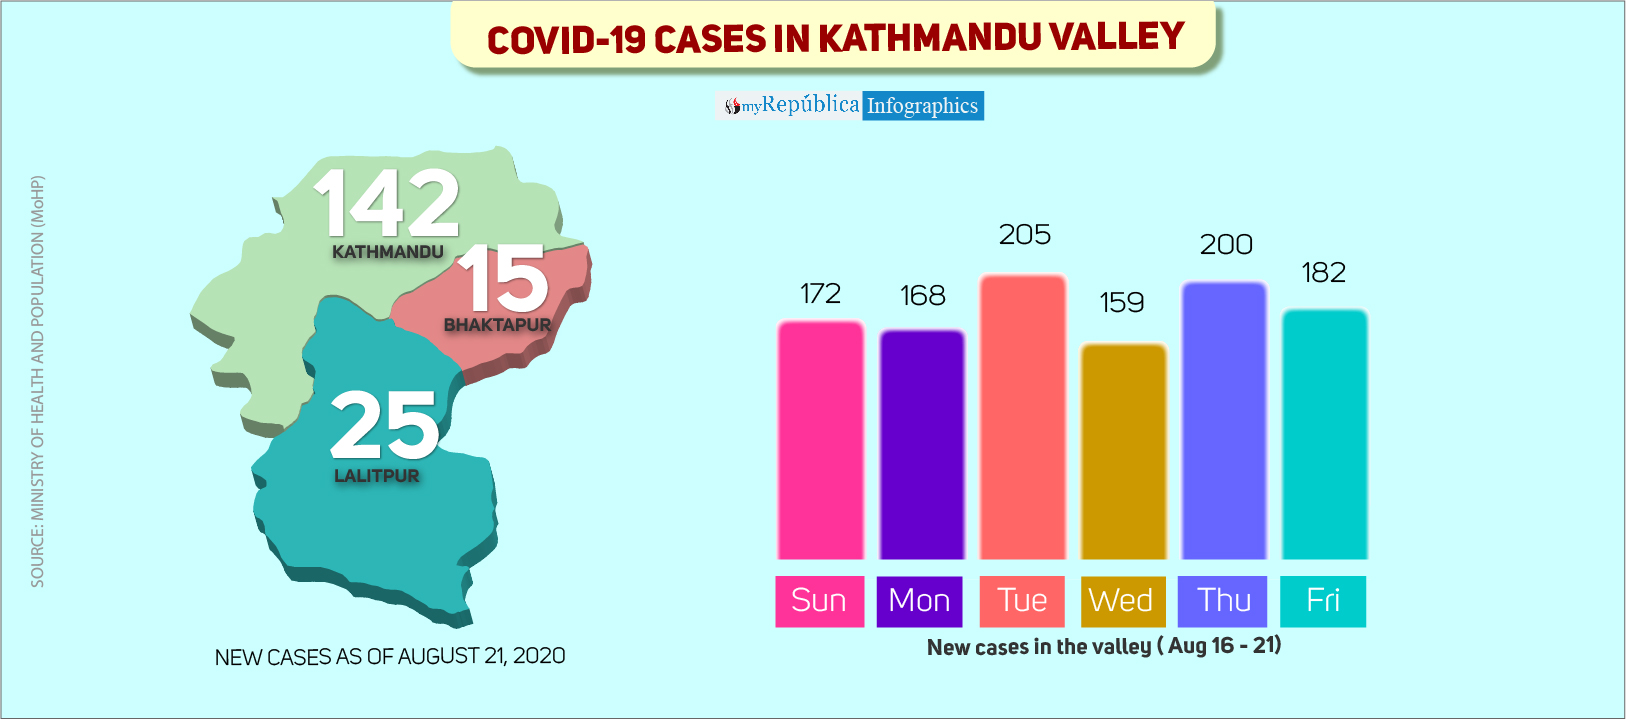 182 new COVID-19 cases in Kathmandu Valley